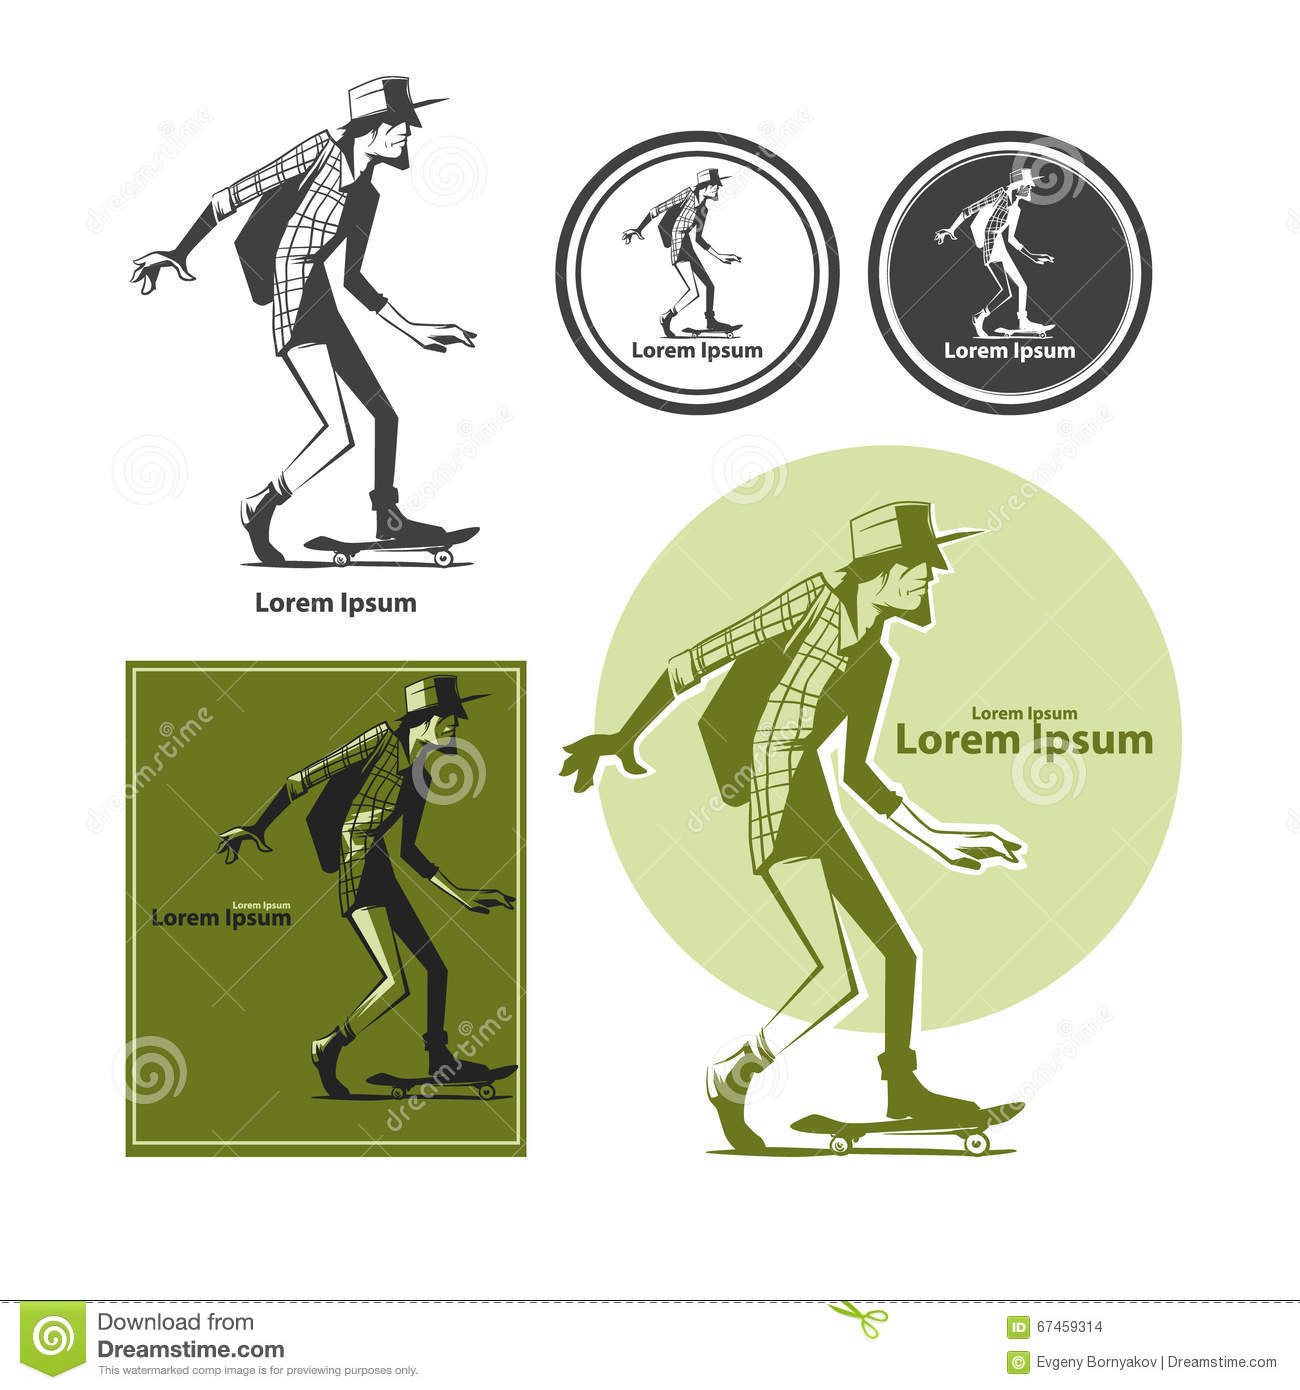 Cartoon Character Design Templates : Skateboarder stock illustration image